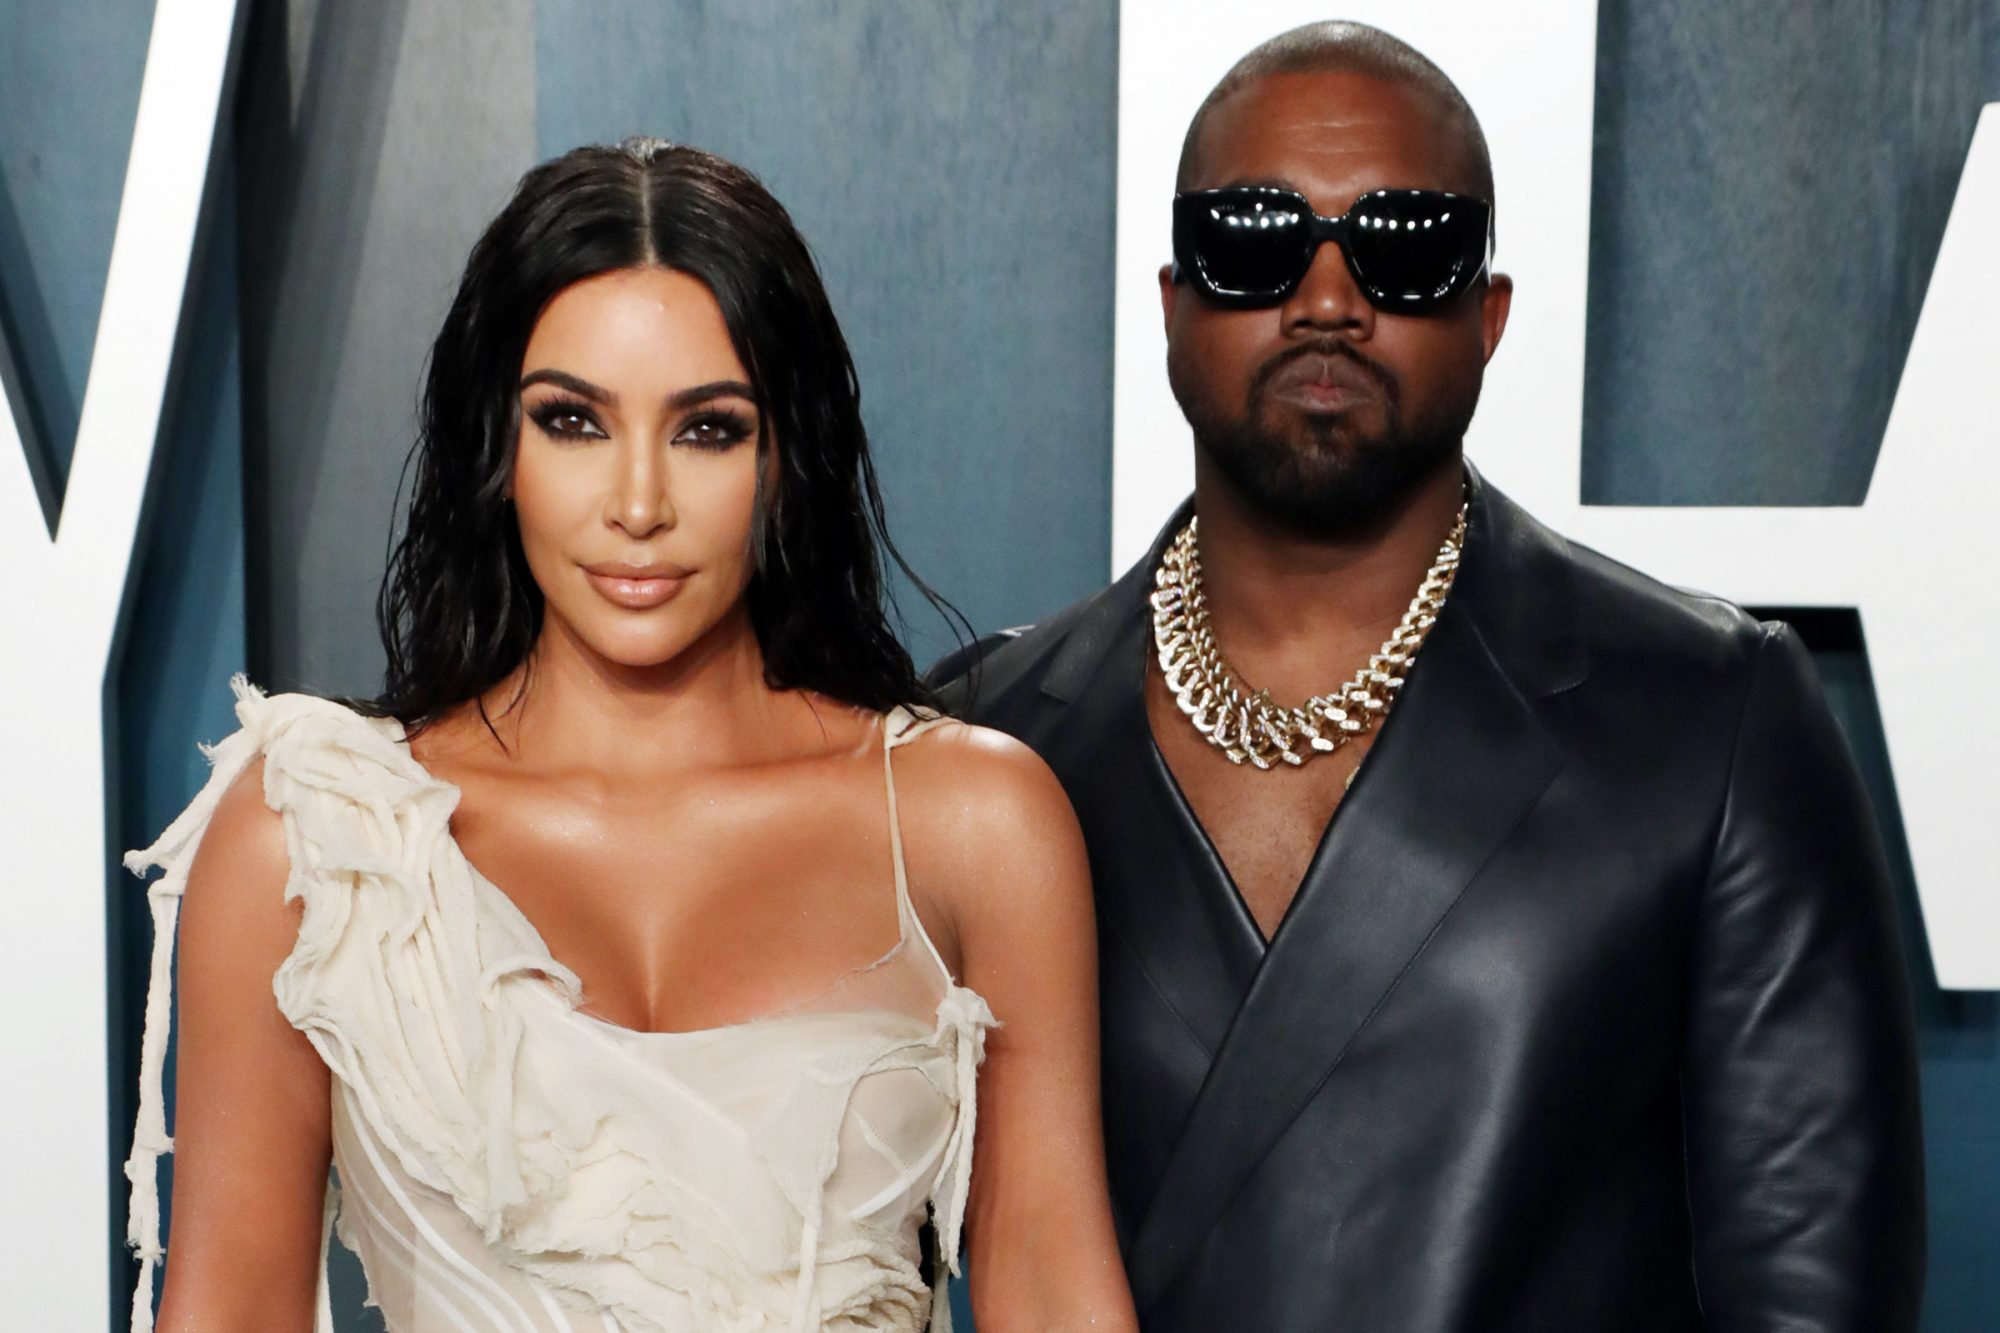 """""""kuwtk-kim-kardashian-and-kanye-west-reportedly-getting-along-fine-on-family-vacation-despite-his-divorce-tweets-less-than-a-month-ago"""""""